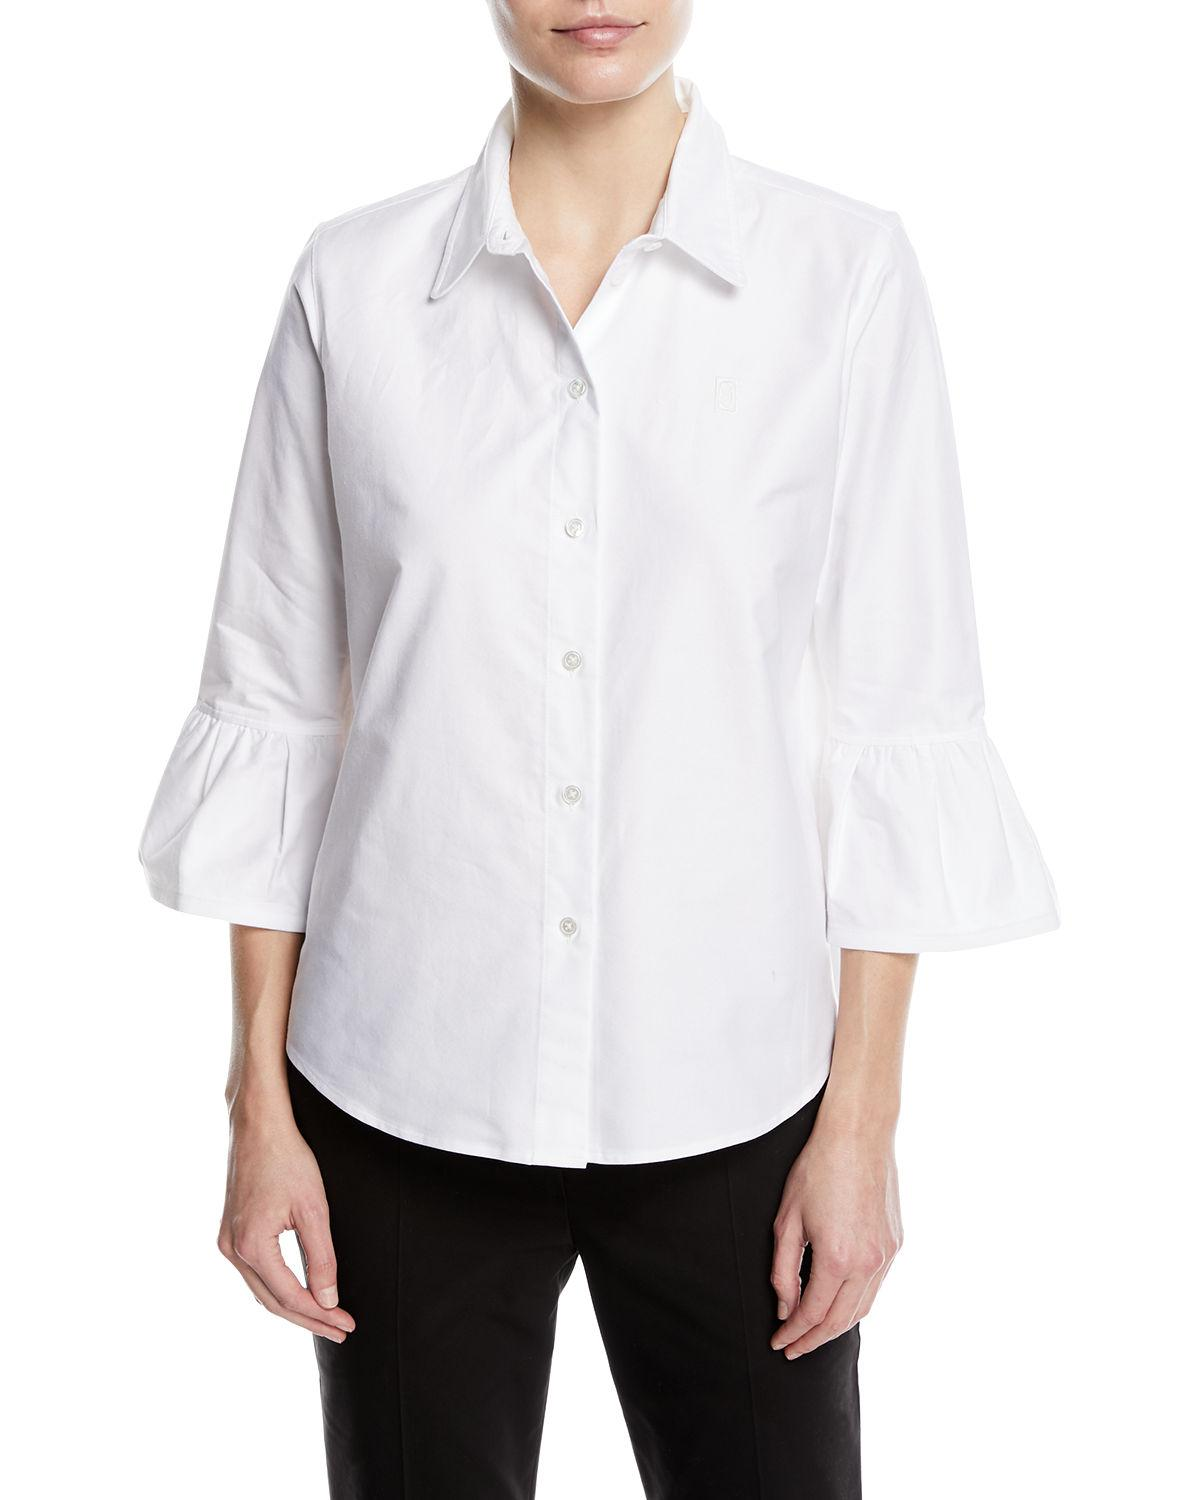 Marc Jacobs Woman Ruffle-trimmed Cotton-blend Poplin Shirt White Size 4 Marc Jacobs Clearance Marketable Free Shipping Cheap Real vRSZ2jfBS